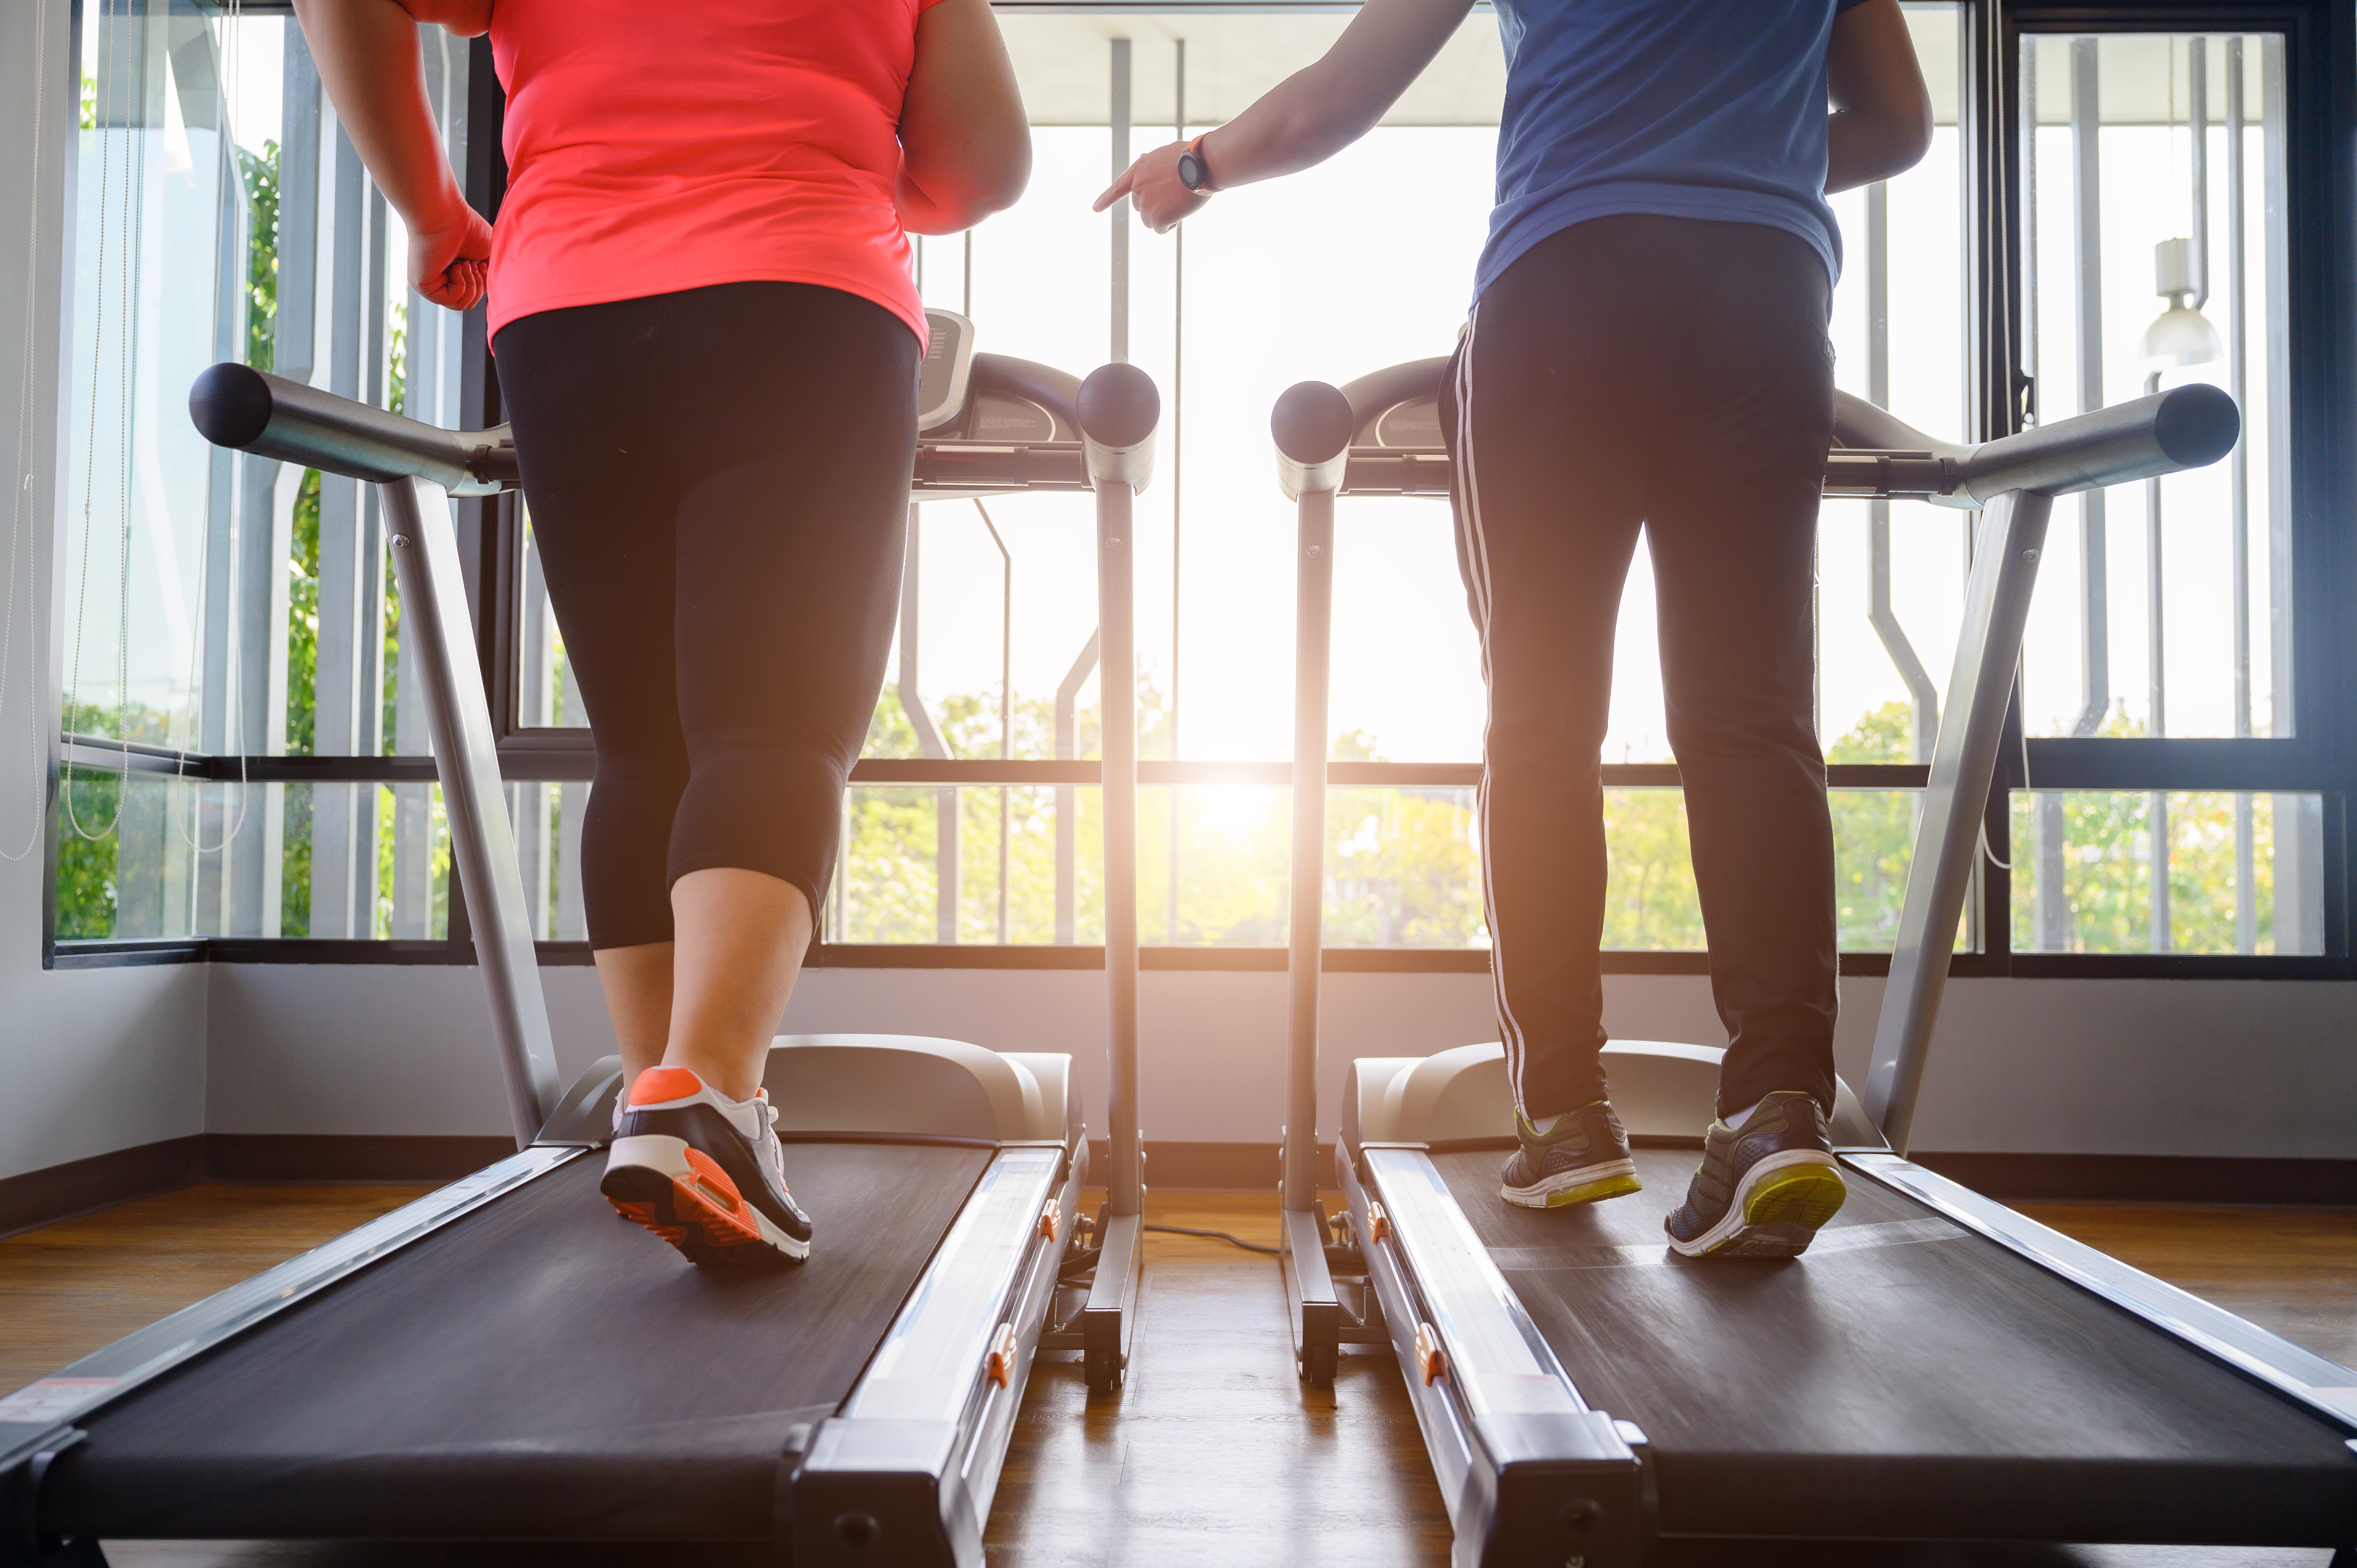 Personal training for weight loss